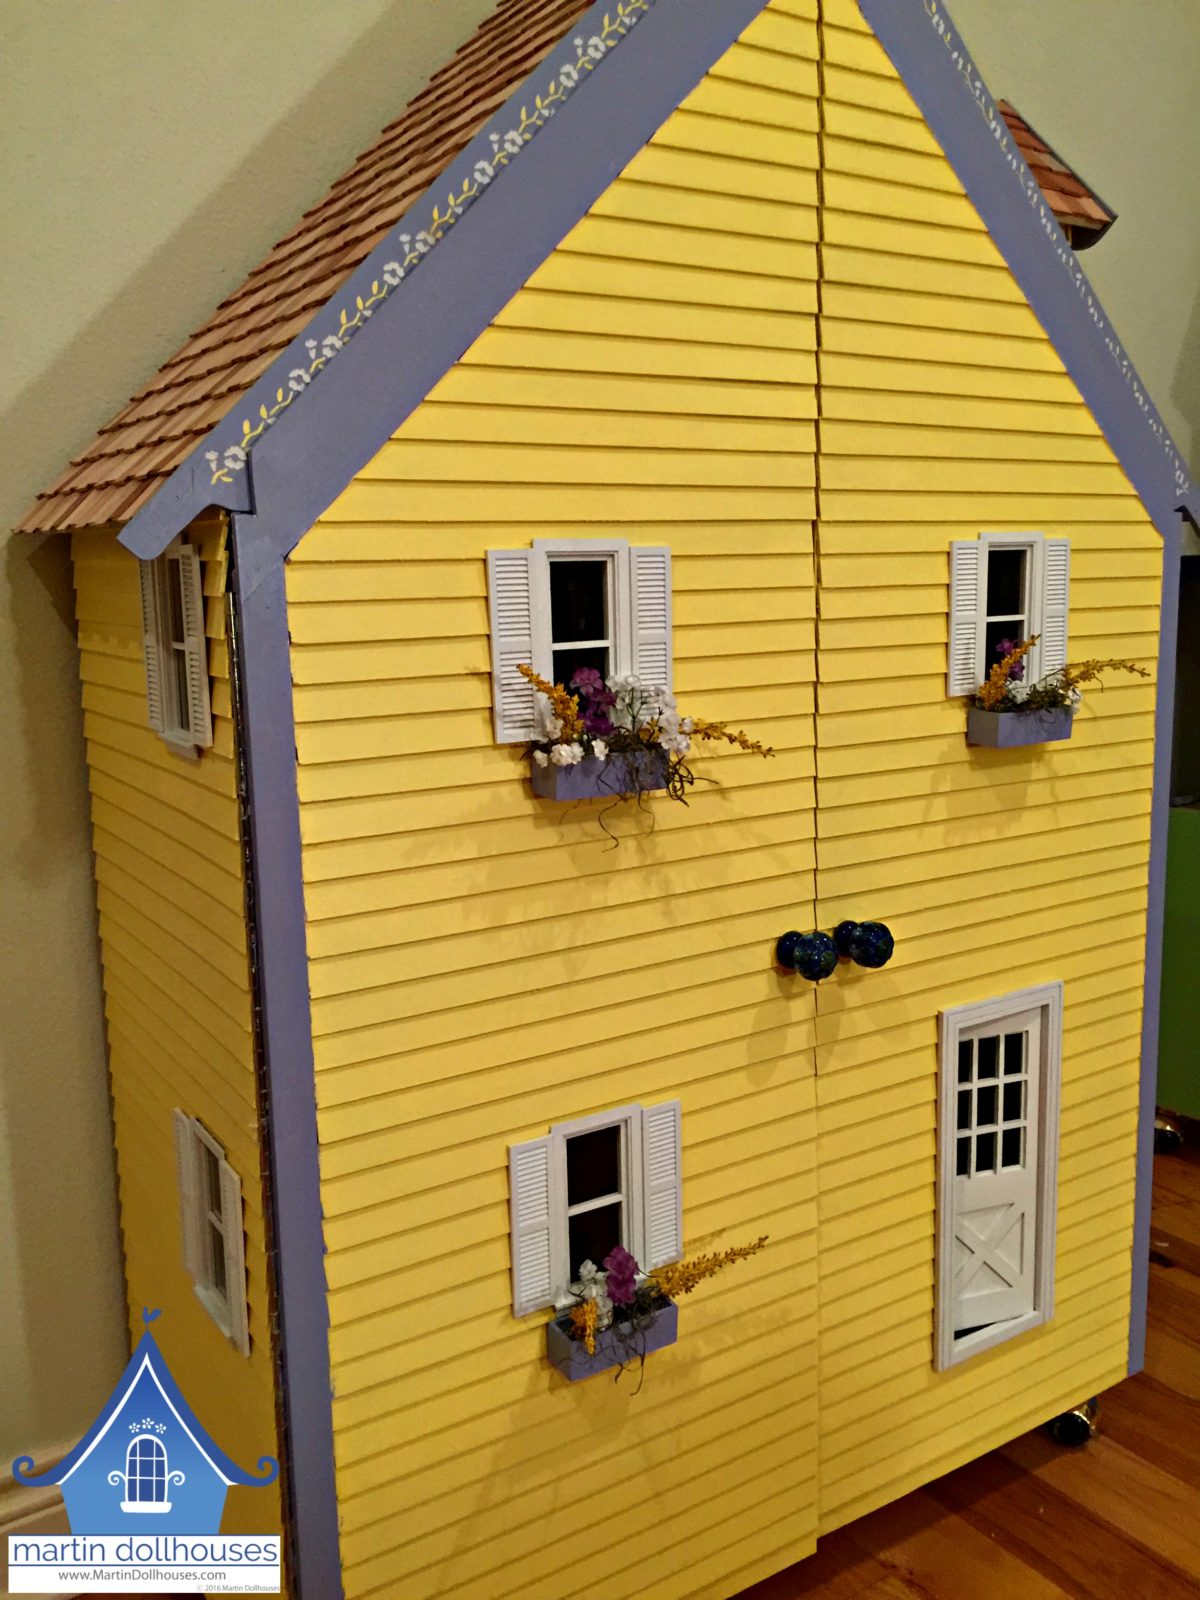 Front of Barbie doll house from Martin Dollhouses